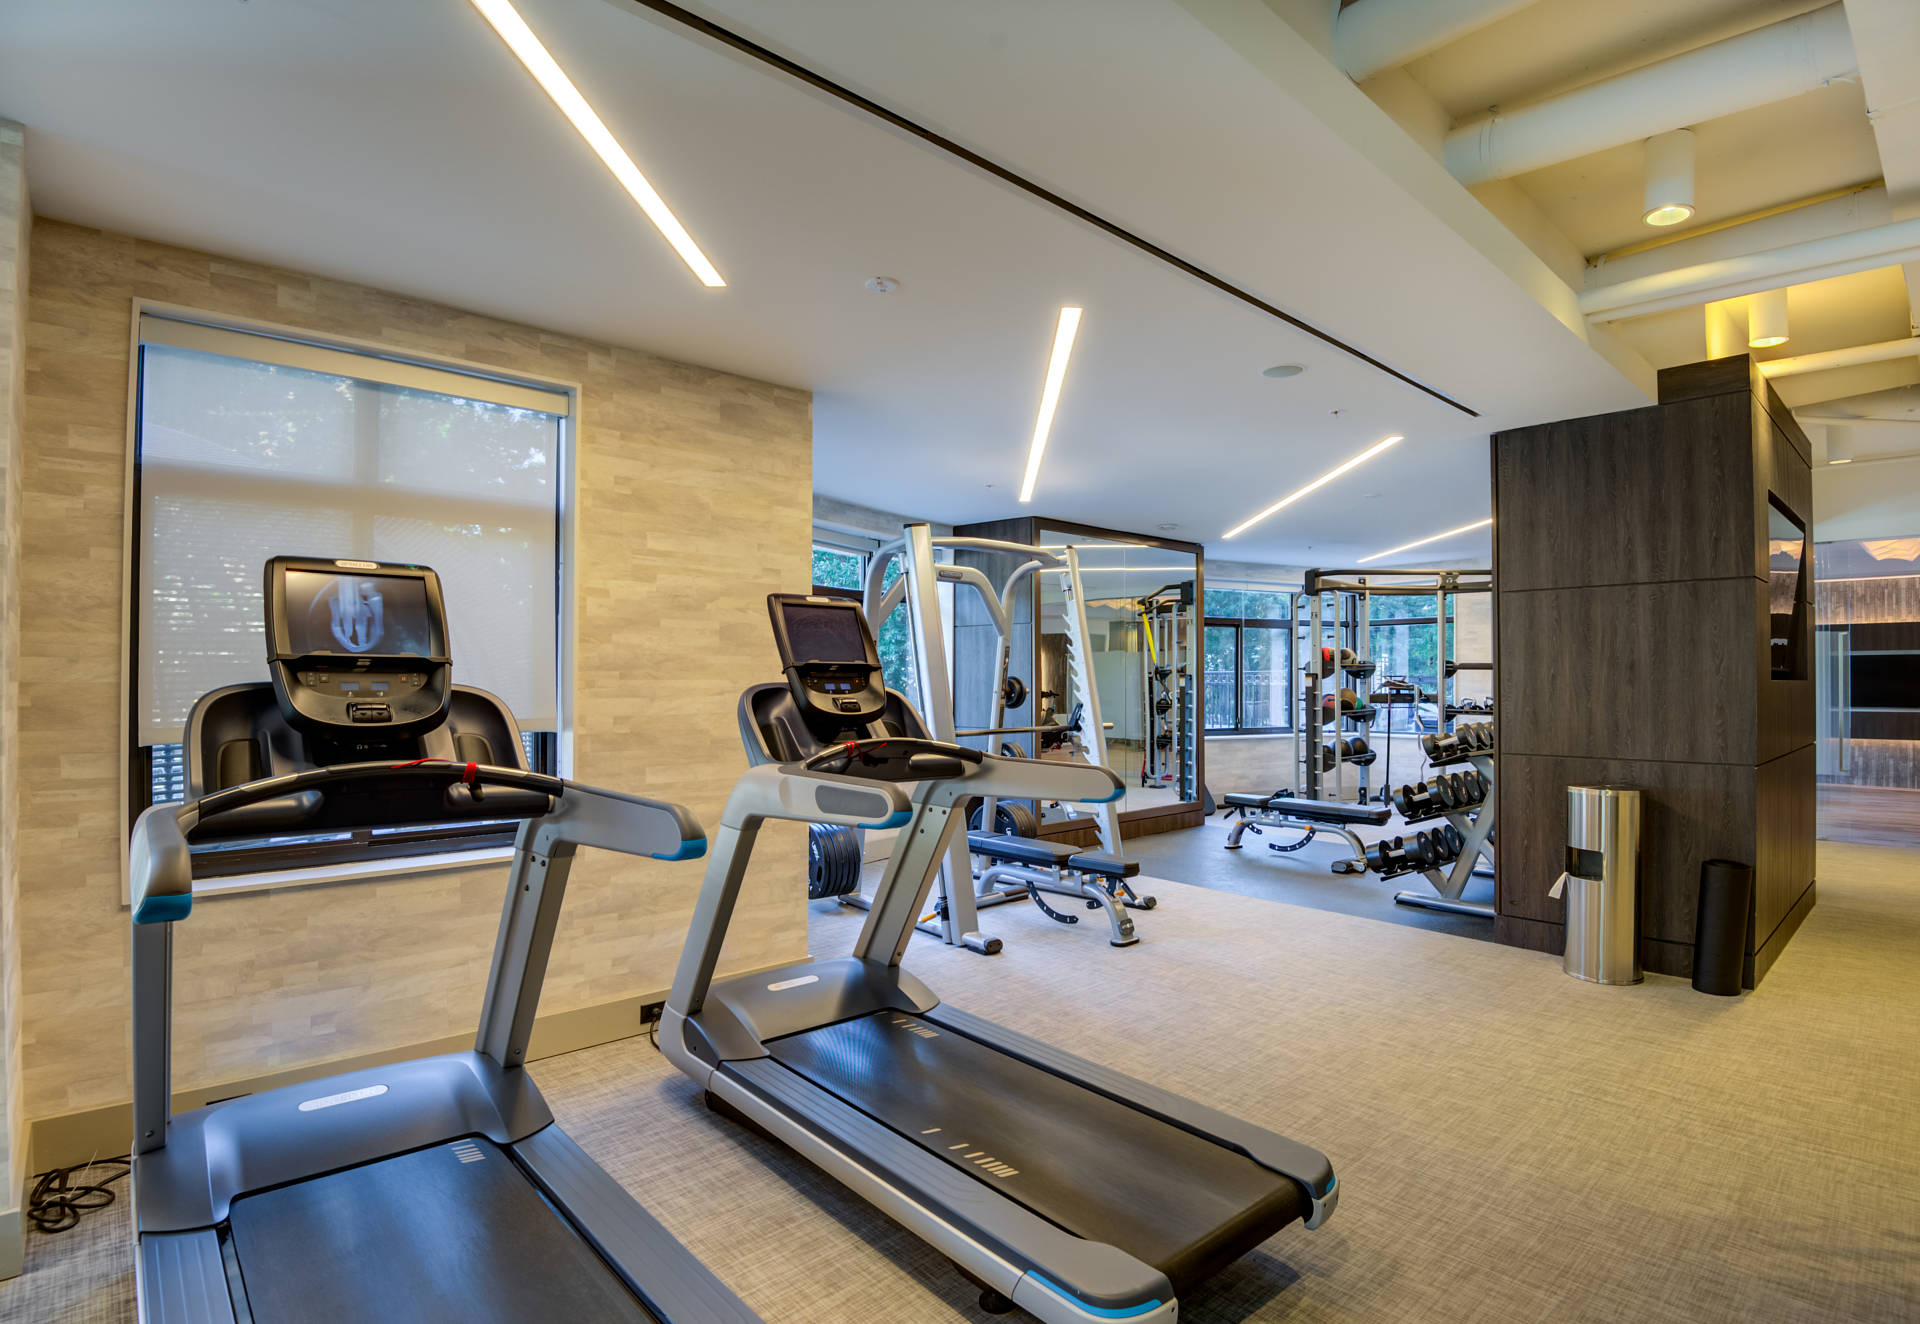 Work up a sweat in our fitness center.